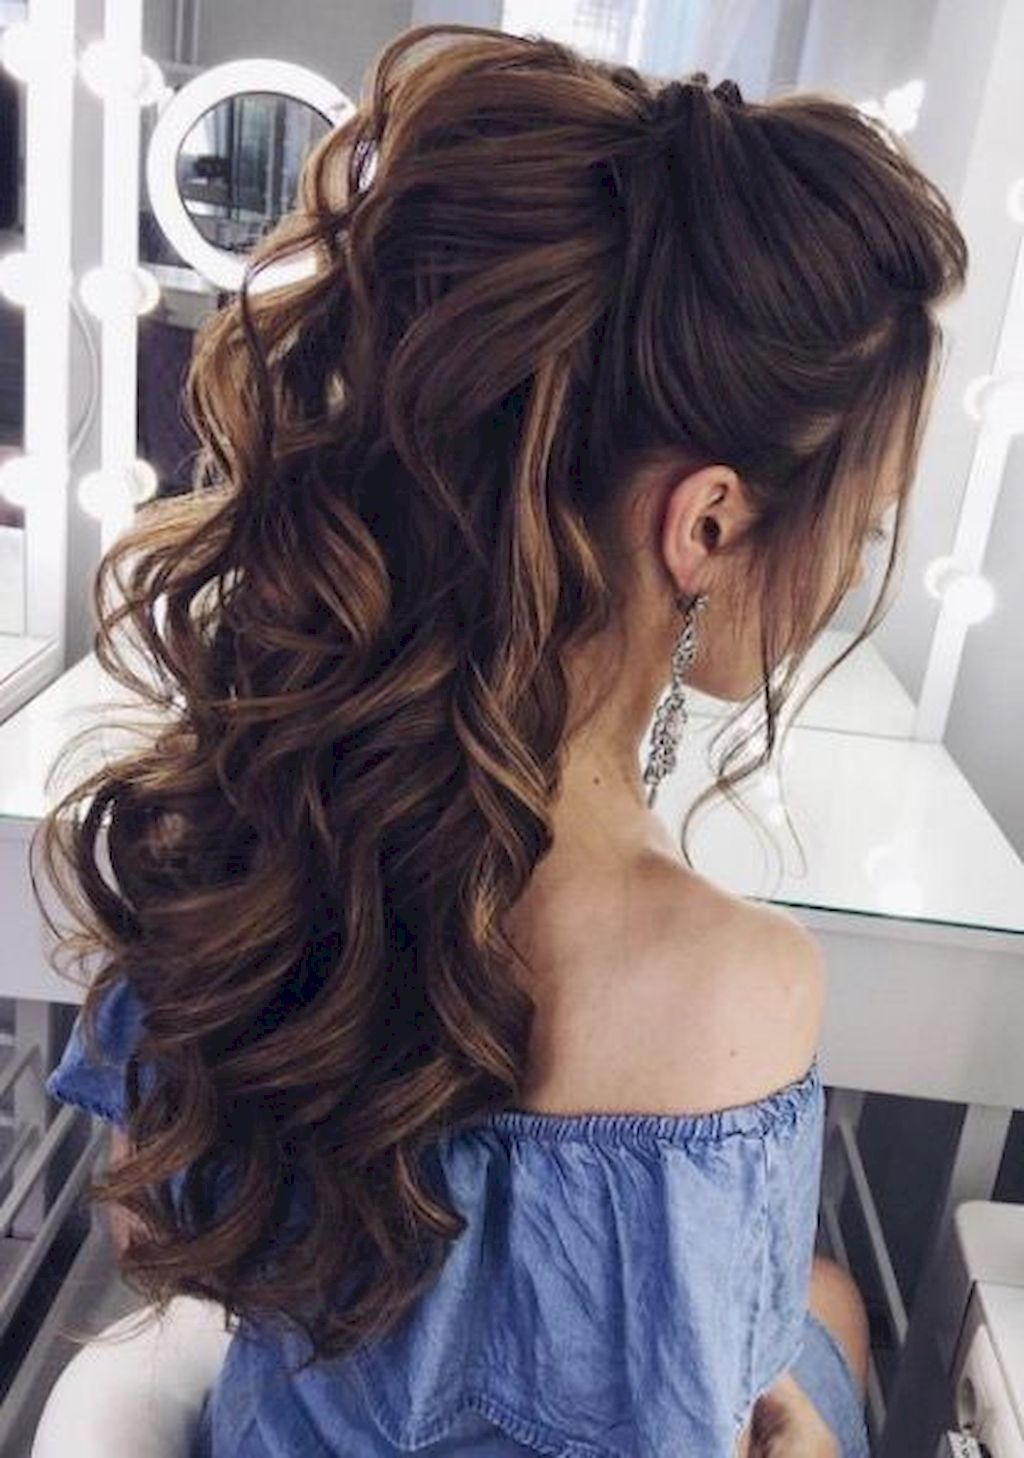 72 Bridal Wedding Hairstyles For Long Hair that will Inspire ...